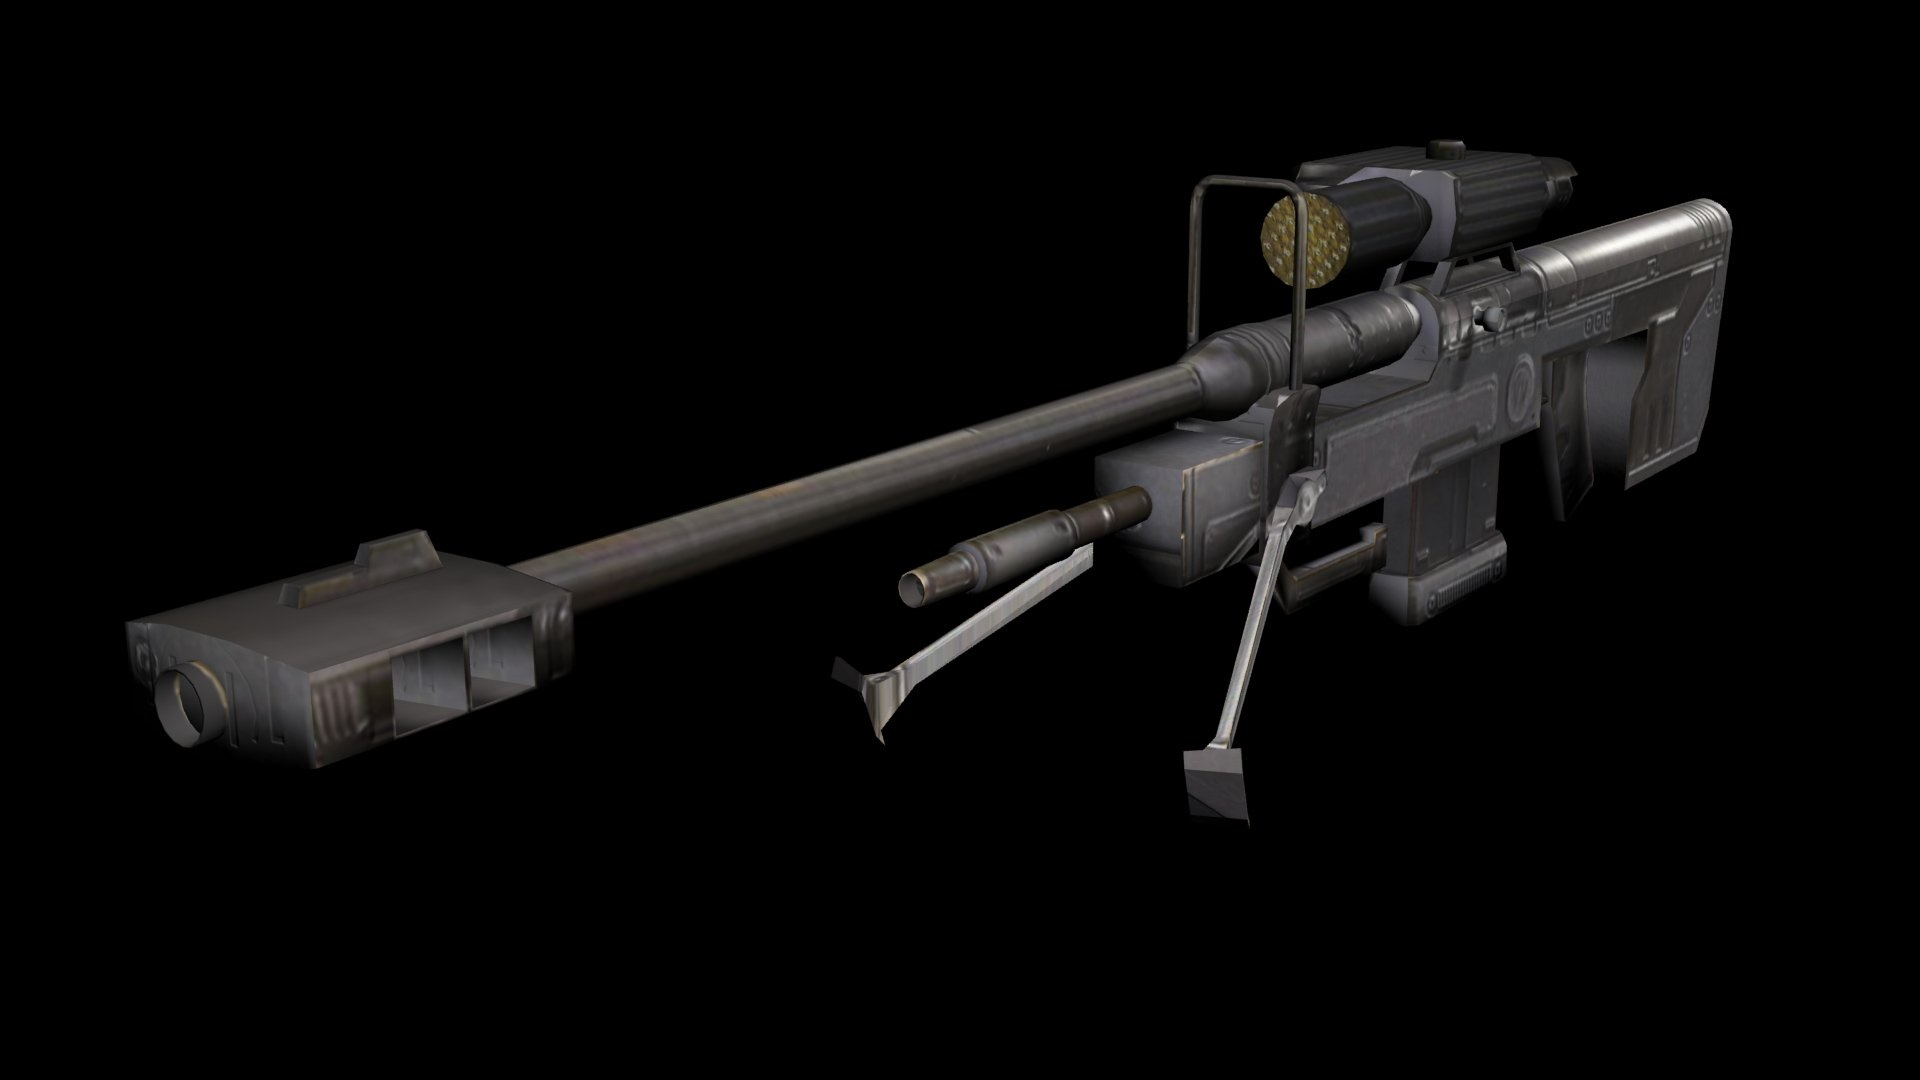 halo 3 sniper rifle hd wallpaper | hd latest wallpapers